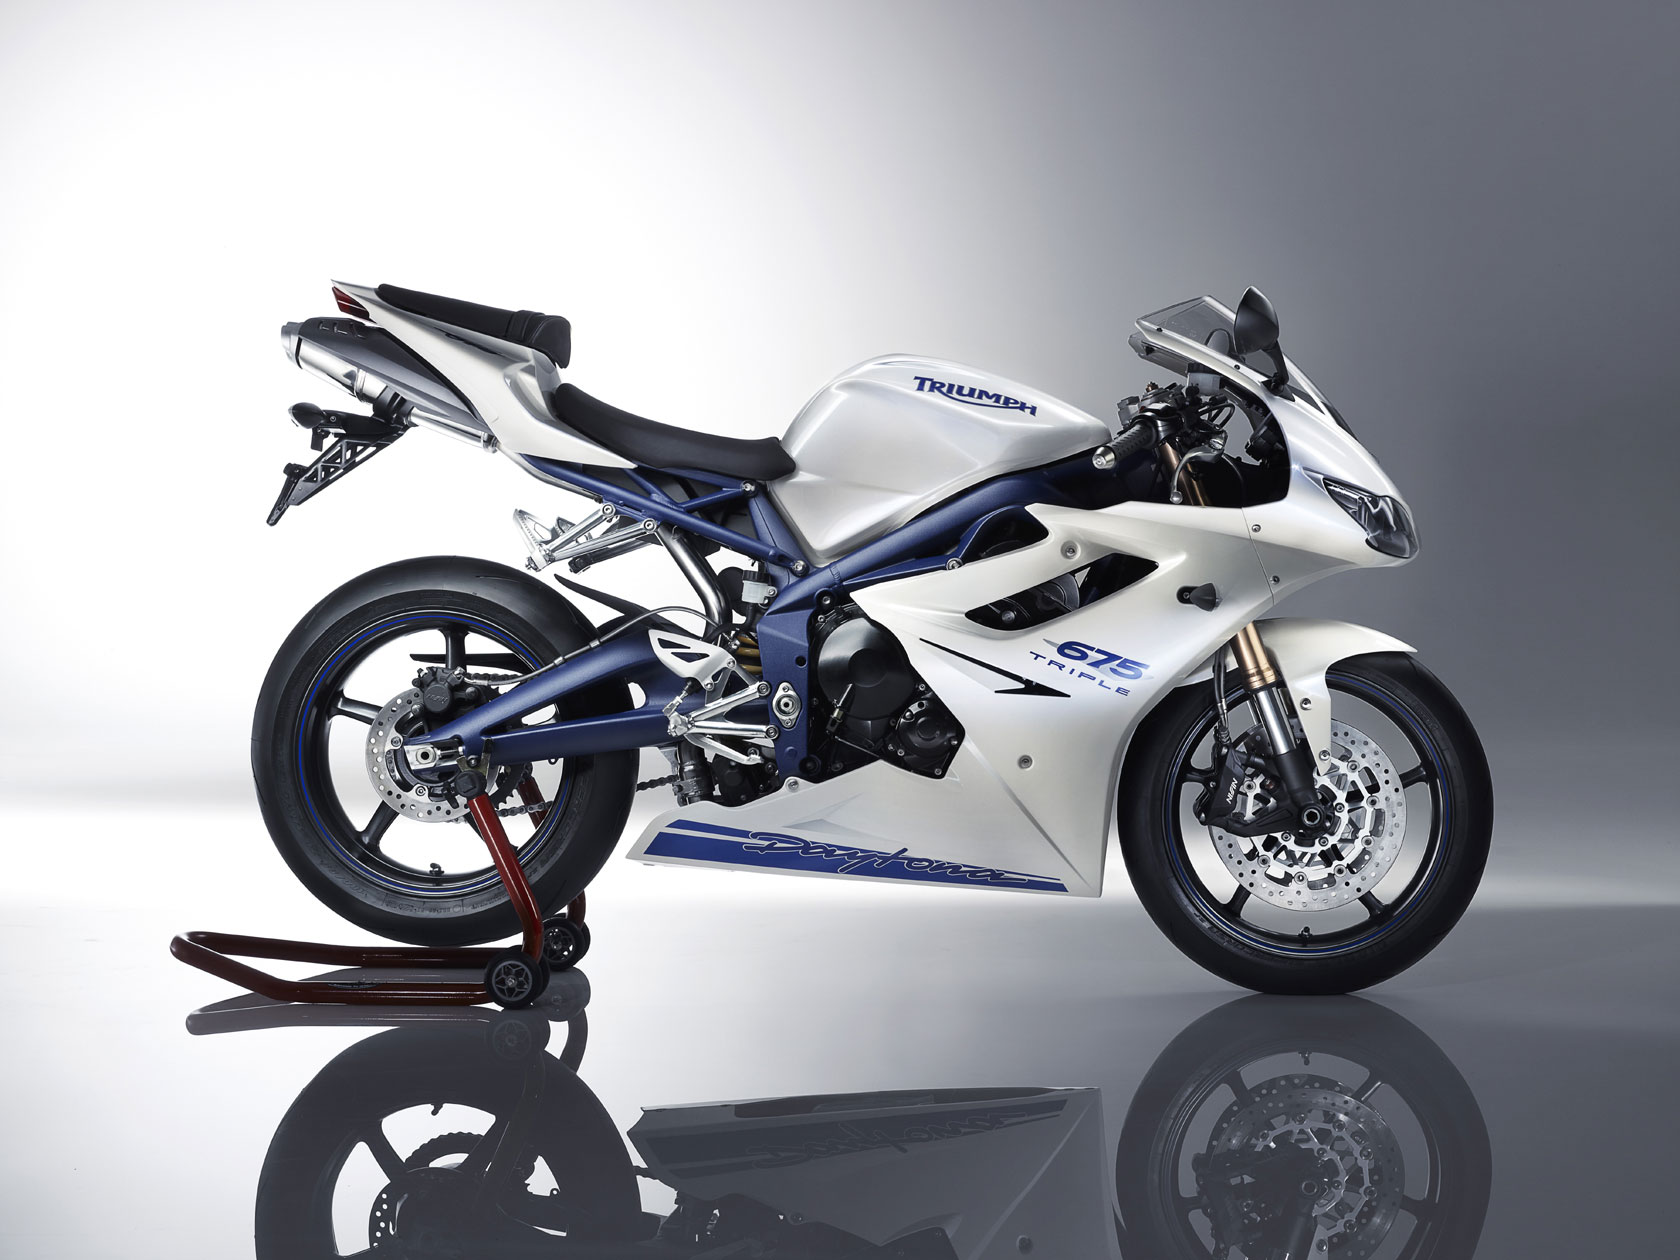 Magnificent 2010 Triumph Daytona 675 Special Edition Ibusinesslaw Wood Chair Design Ideas Ibusinesslaworg